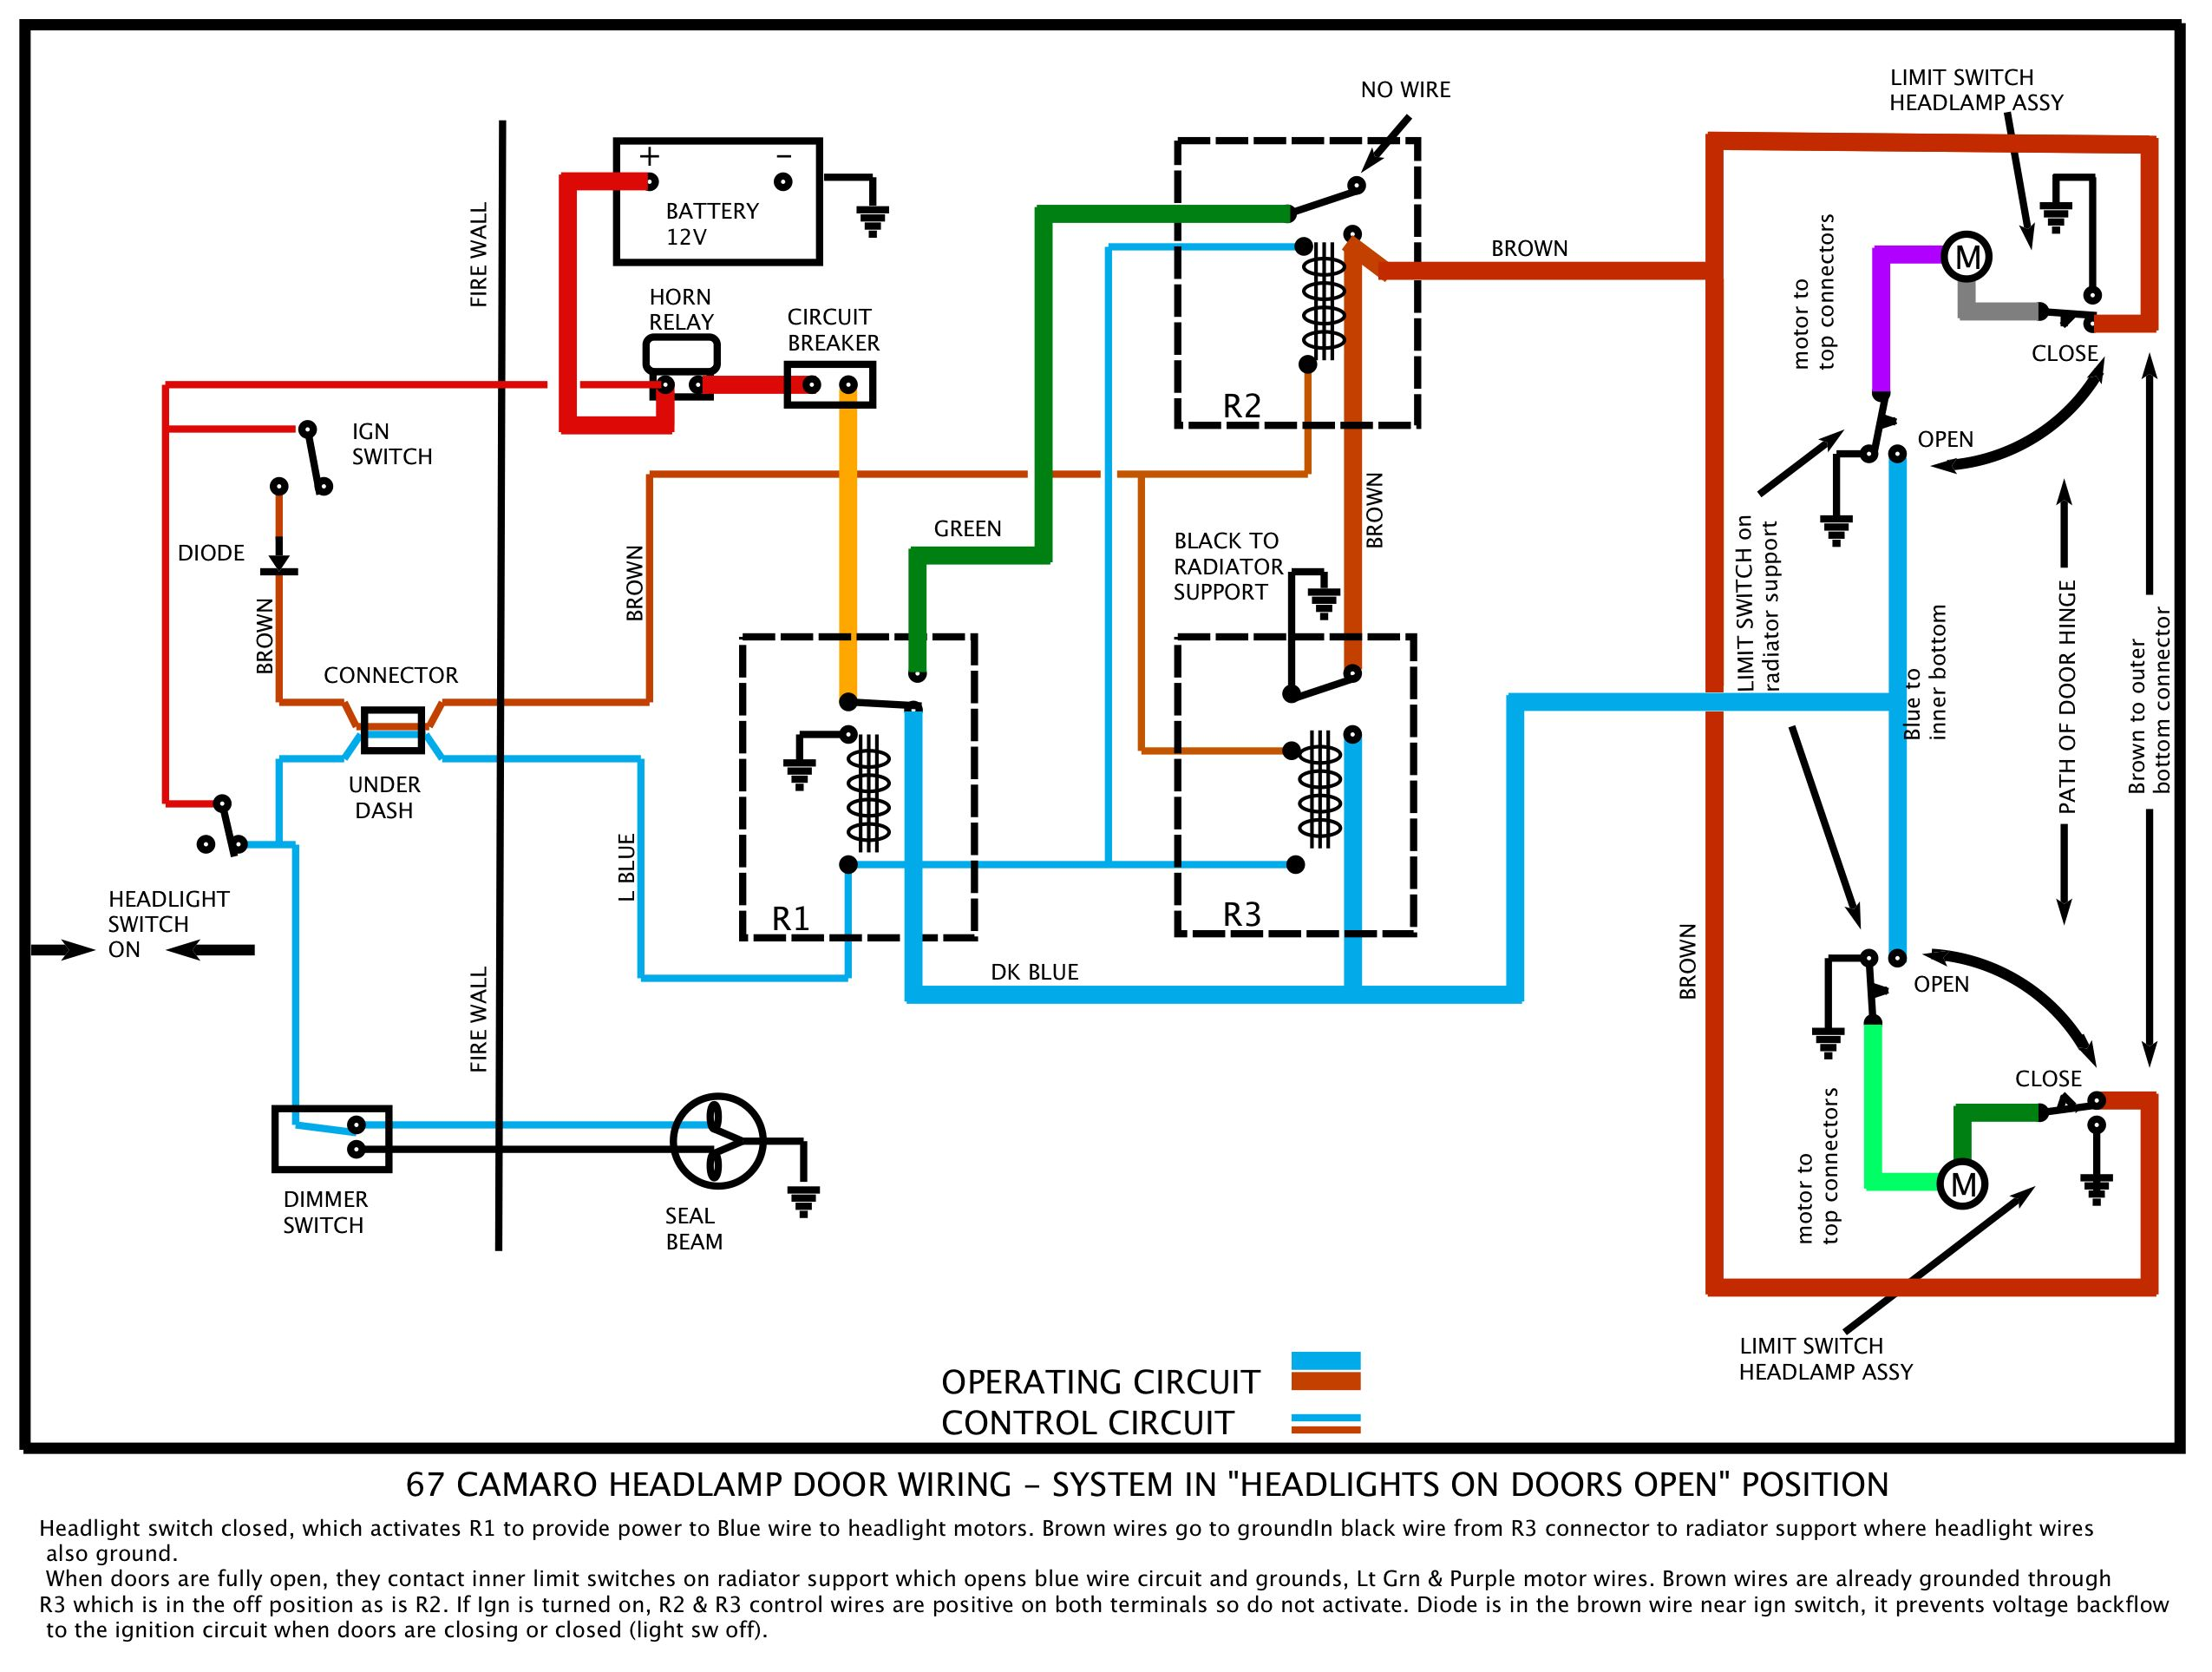 67 camaro ignition switch wiring diagram just wiring data johnson ignition  switch wiring diagram 67 camaro